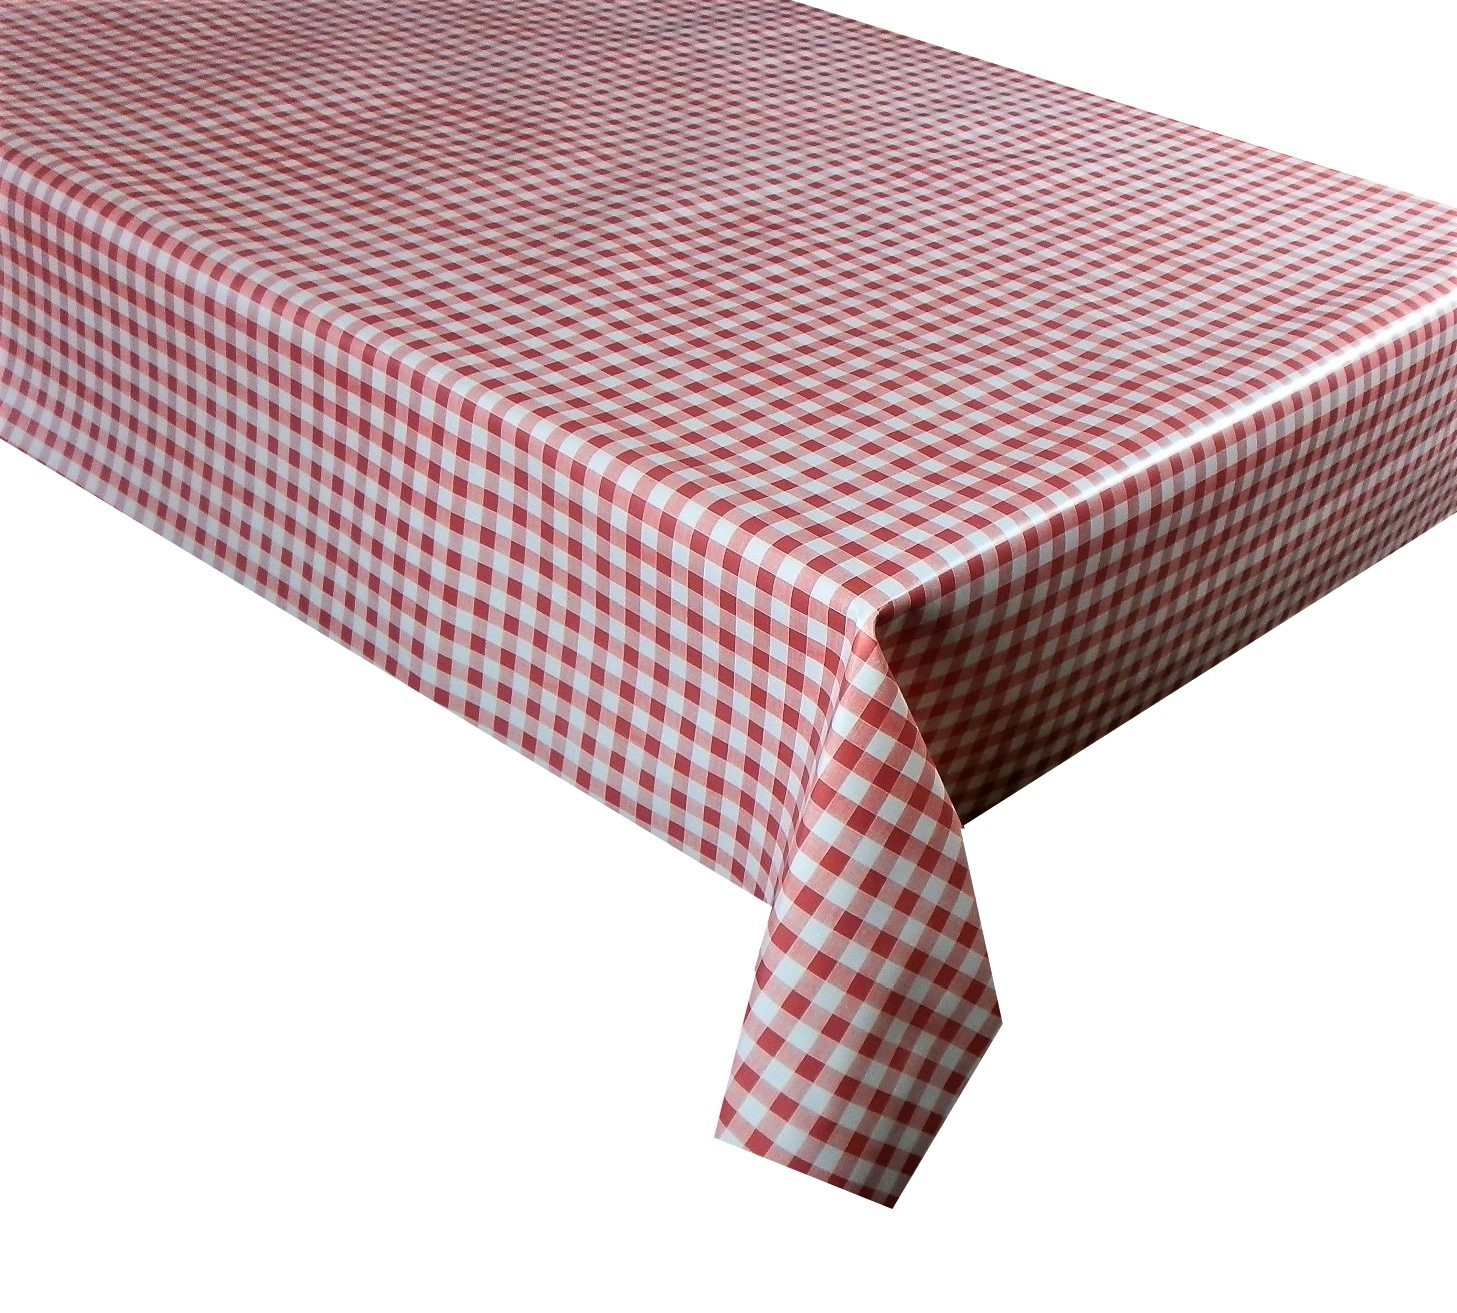 Red gingham check vinyl tablecloth